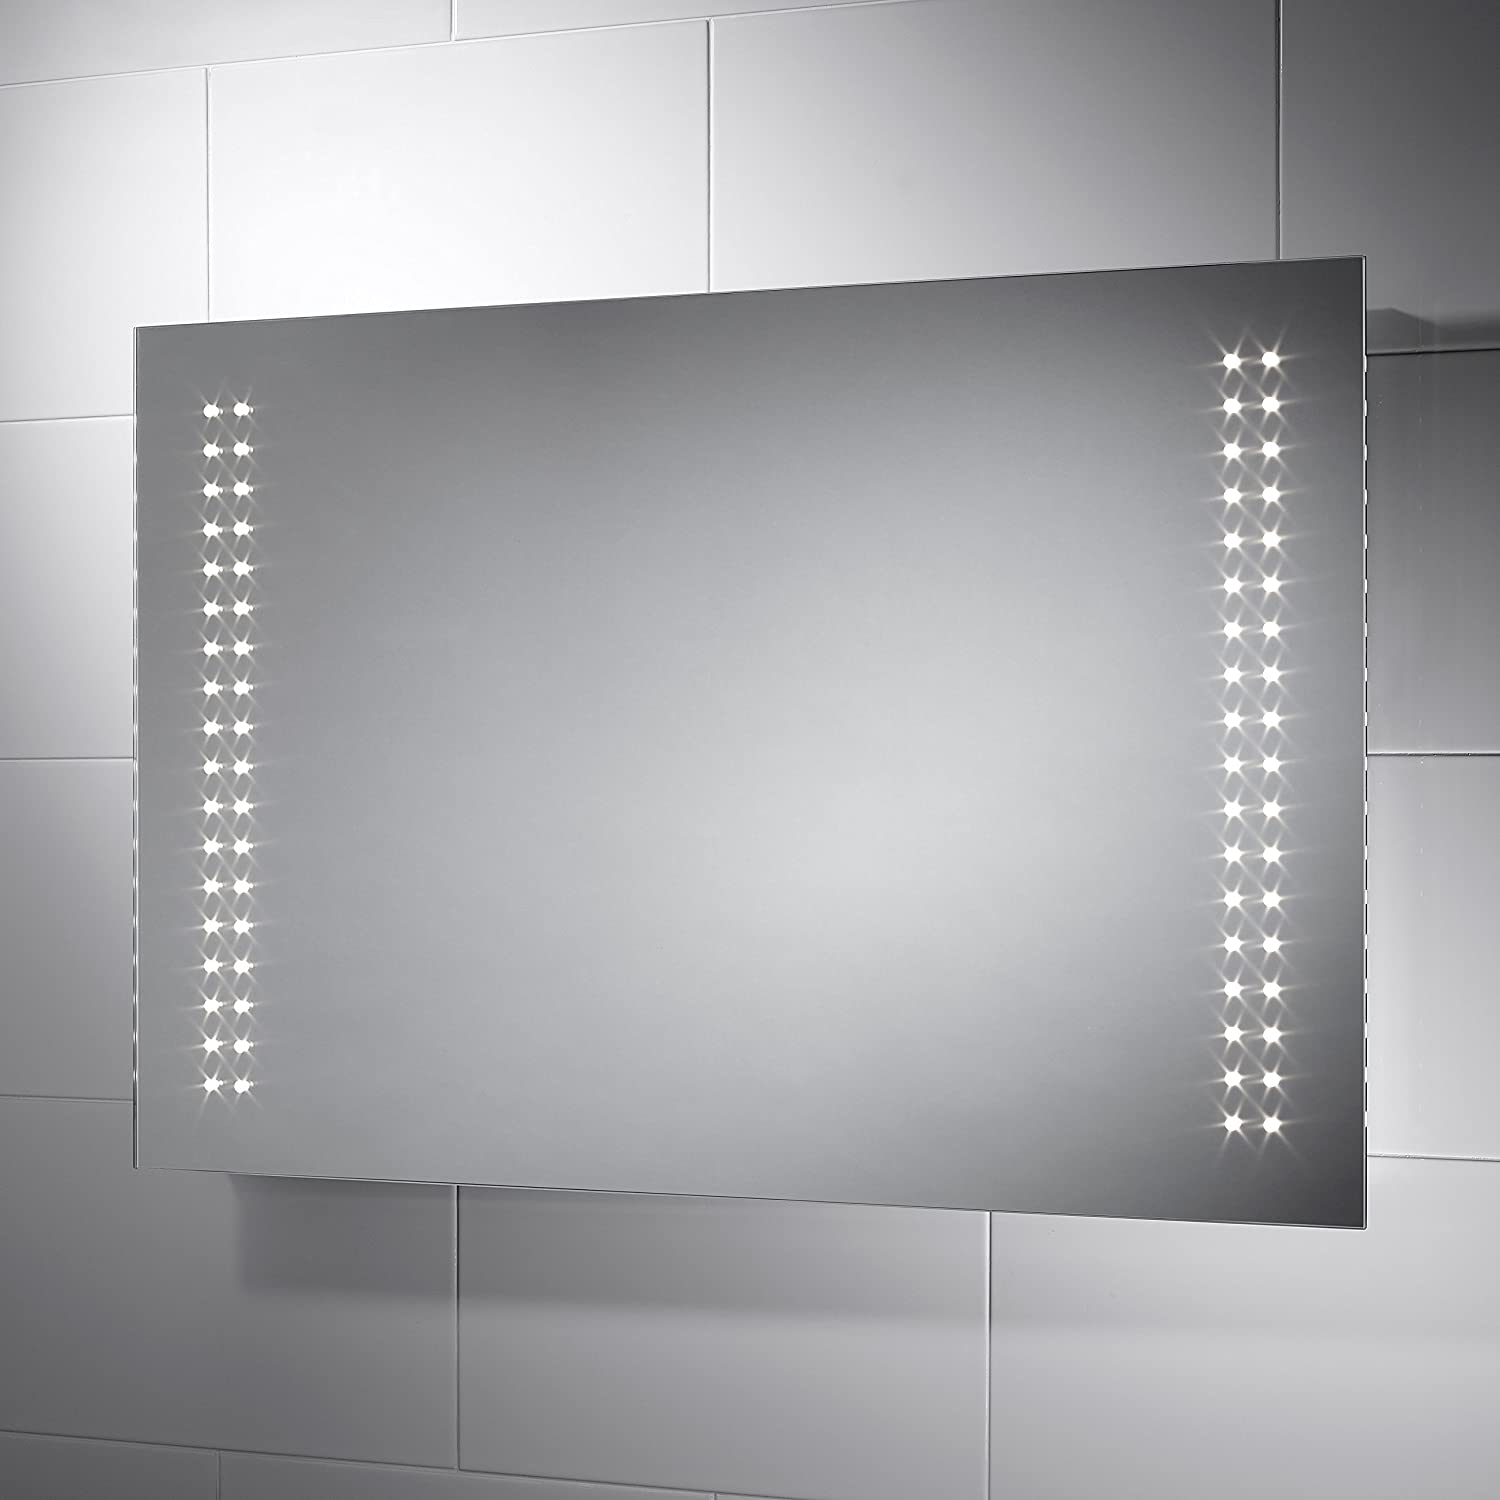 Pebble Grey Rectangular Sorrento LED Illuminated Bathroom Mirror With Lights Size 900mmW X 600mmH Infra Red Sensor Switch Dual Voltage Shaver